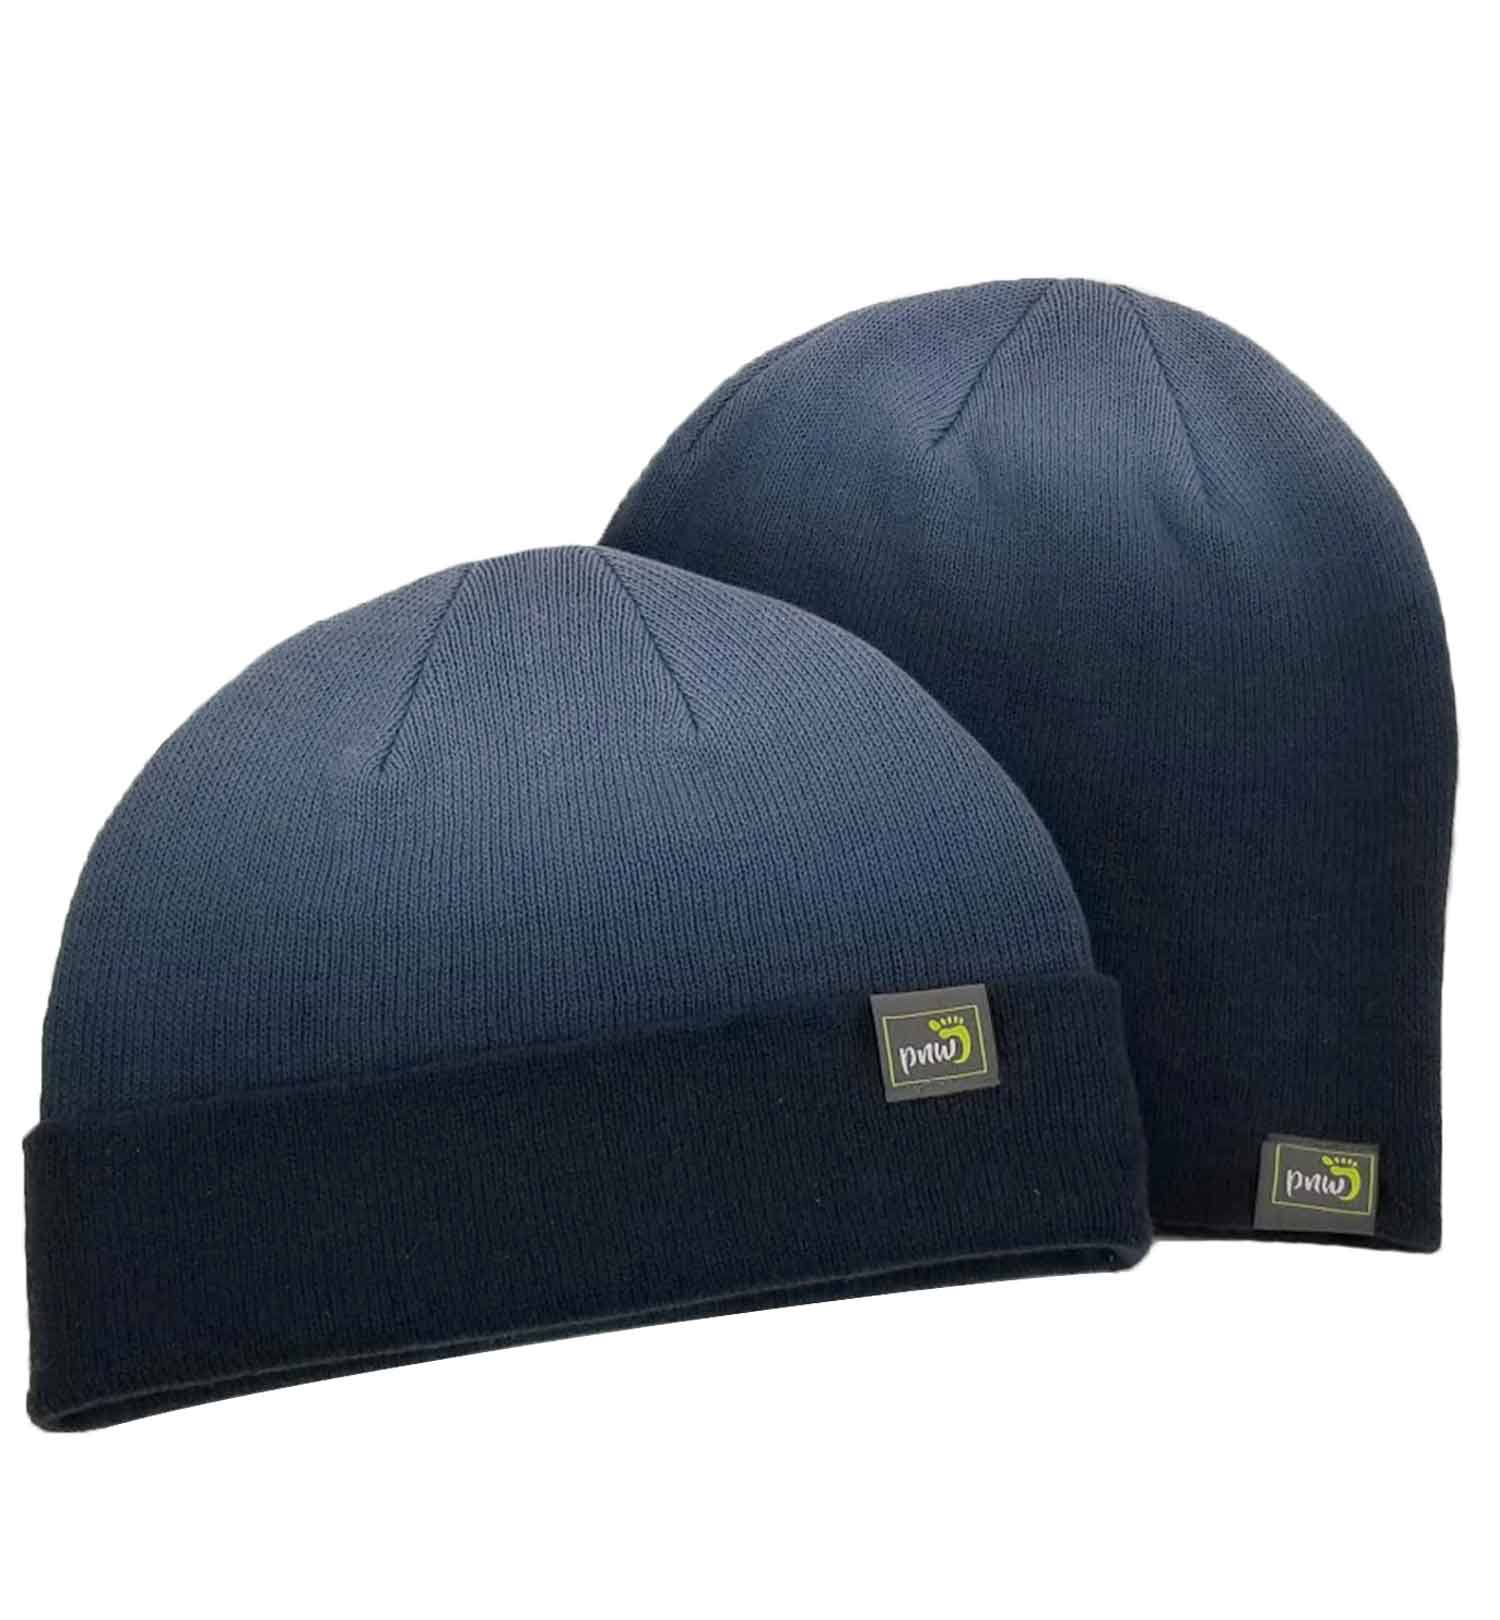 PNW Beanie -  2 In 1 Color Fade - Navy Combo Image